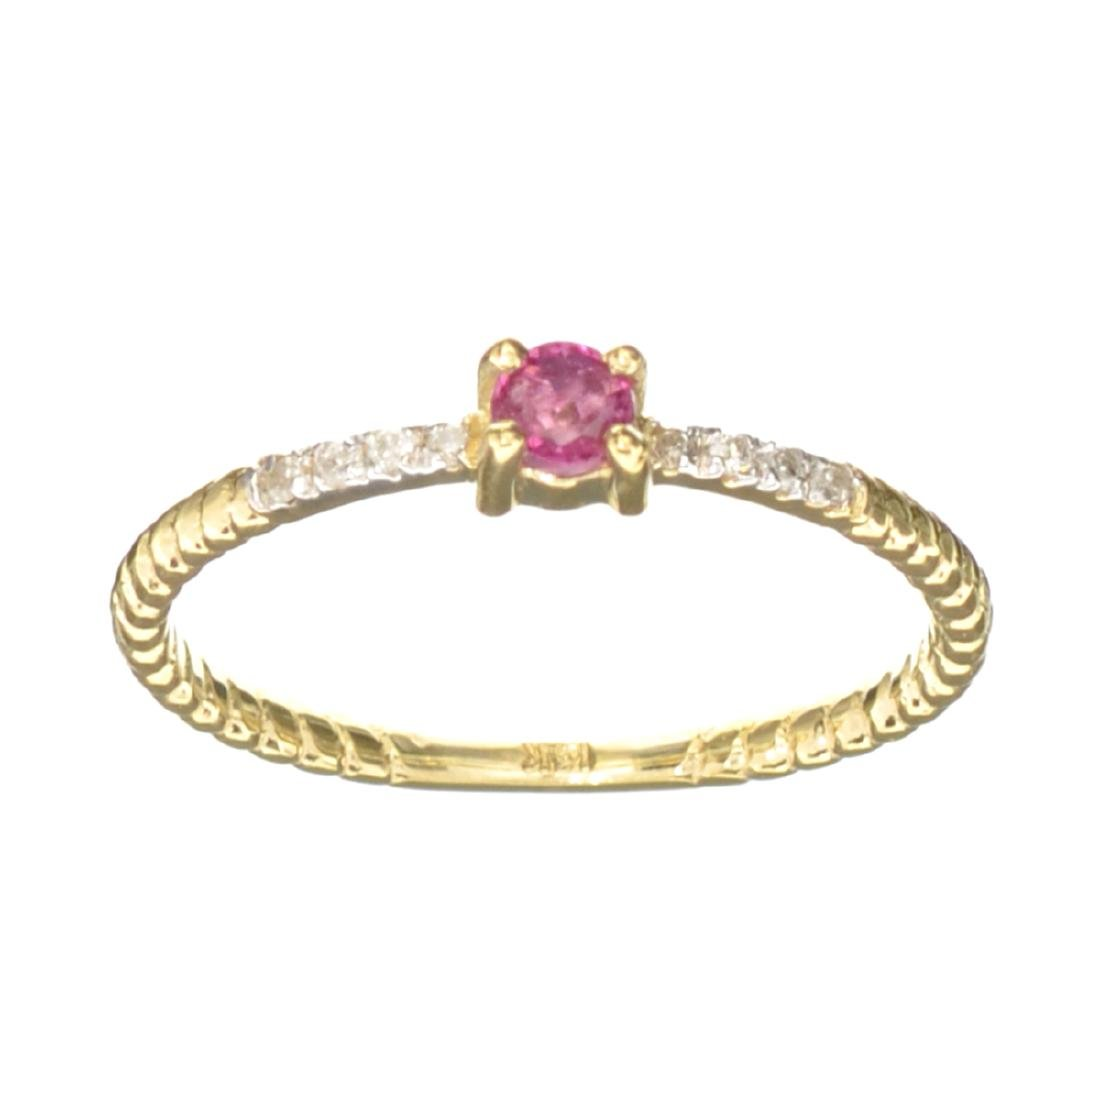 APP: 0.5k Fine Jewelry 14KT Gold, 0.23CT Red Ruby And